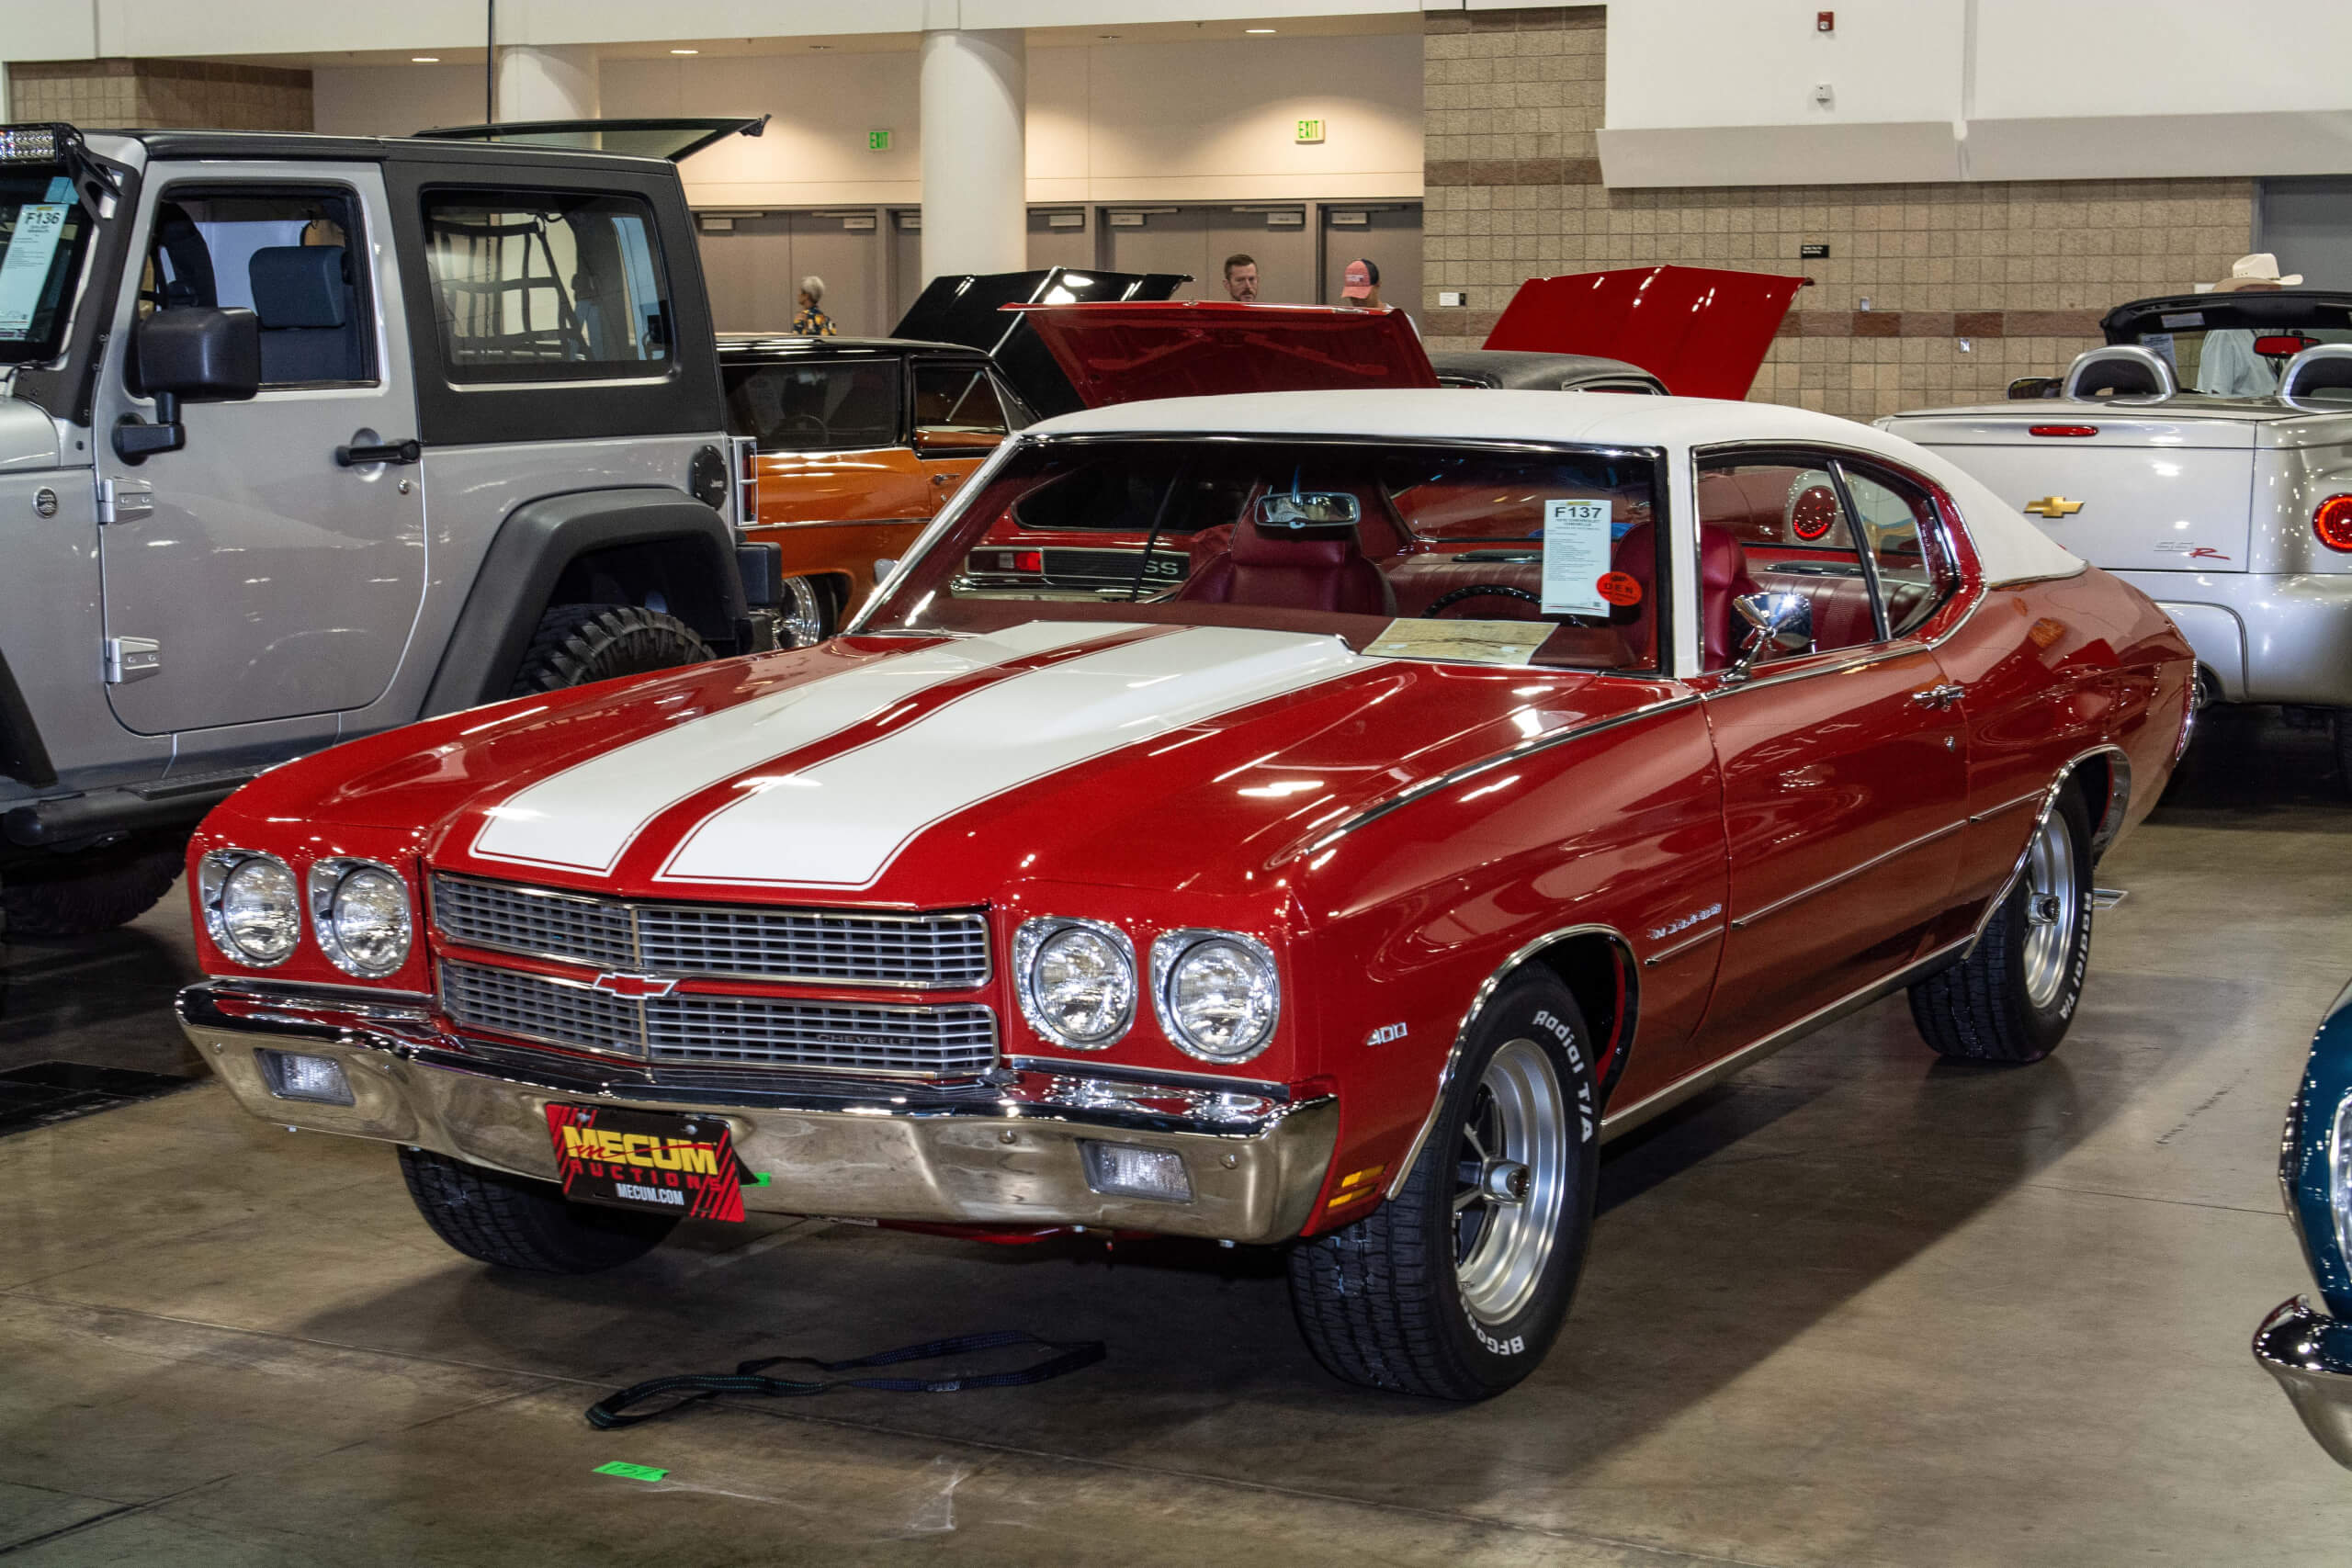 John O'Day brought his 1971 Chevy Chevelle Malibu to the 2019 Mecum Denver Auction.